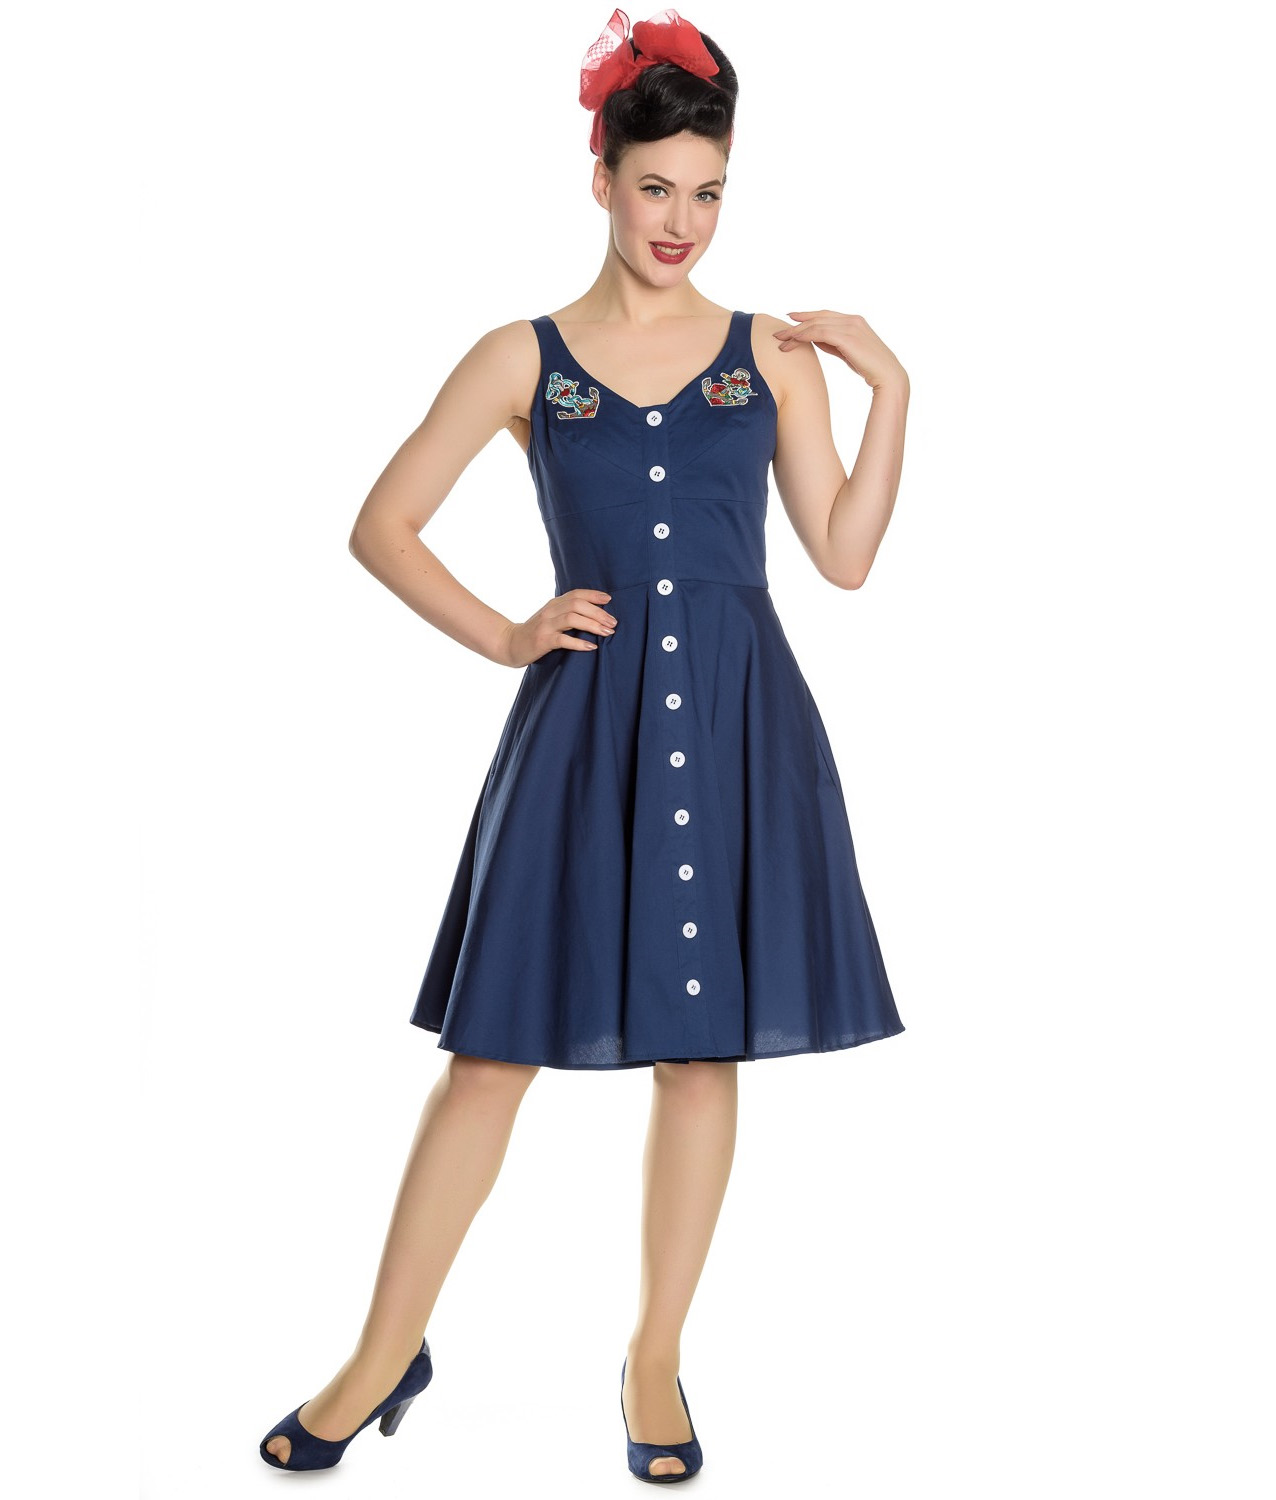 Hell-Bunny-Vintage-50s-Pin-Up-Dress-Navy-Blue-SELA-Nautical-Anchors-All-Sizes thumbnail 31